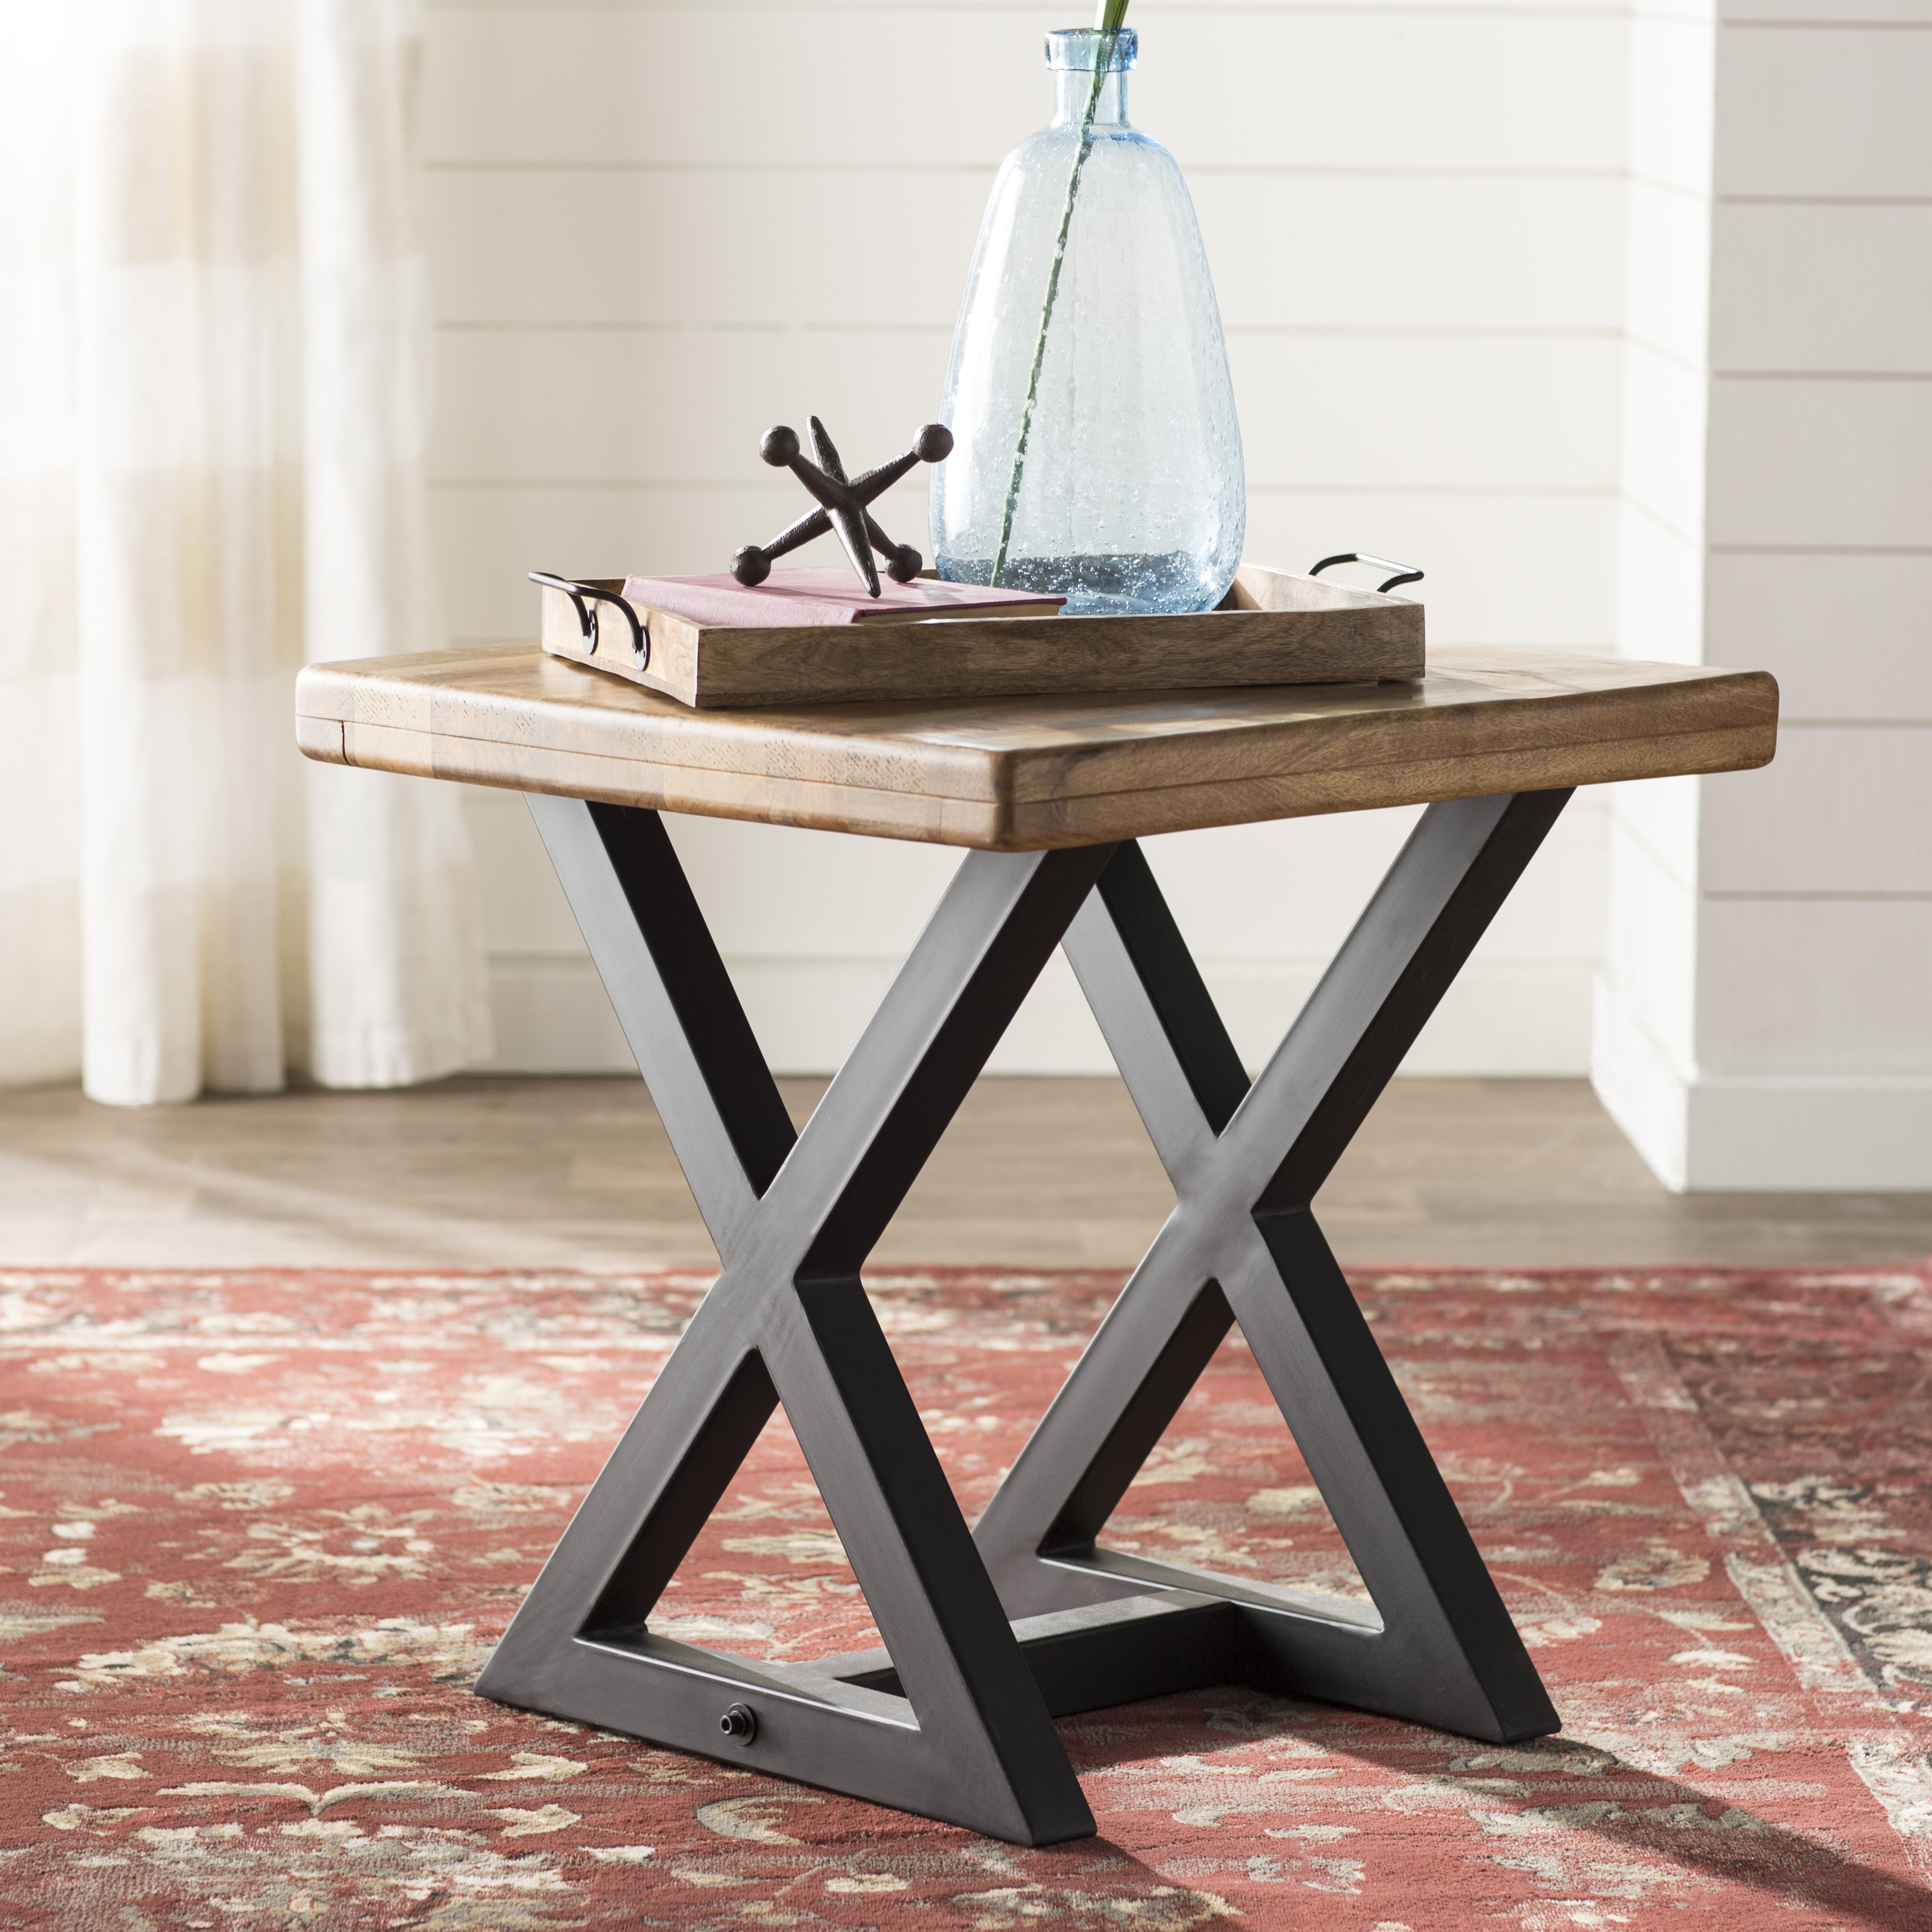 Potomac Adjustable Coffee Tables Throughout Latest Laurel Foundry Modern Farmhouse Hilltop End Table & Reviews (Gallery 10 of 20)